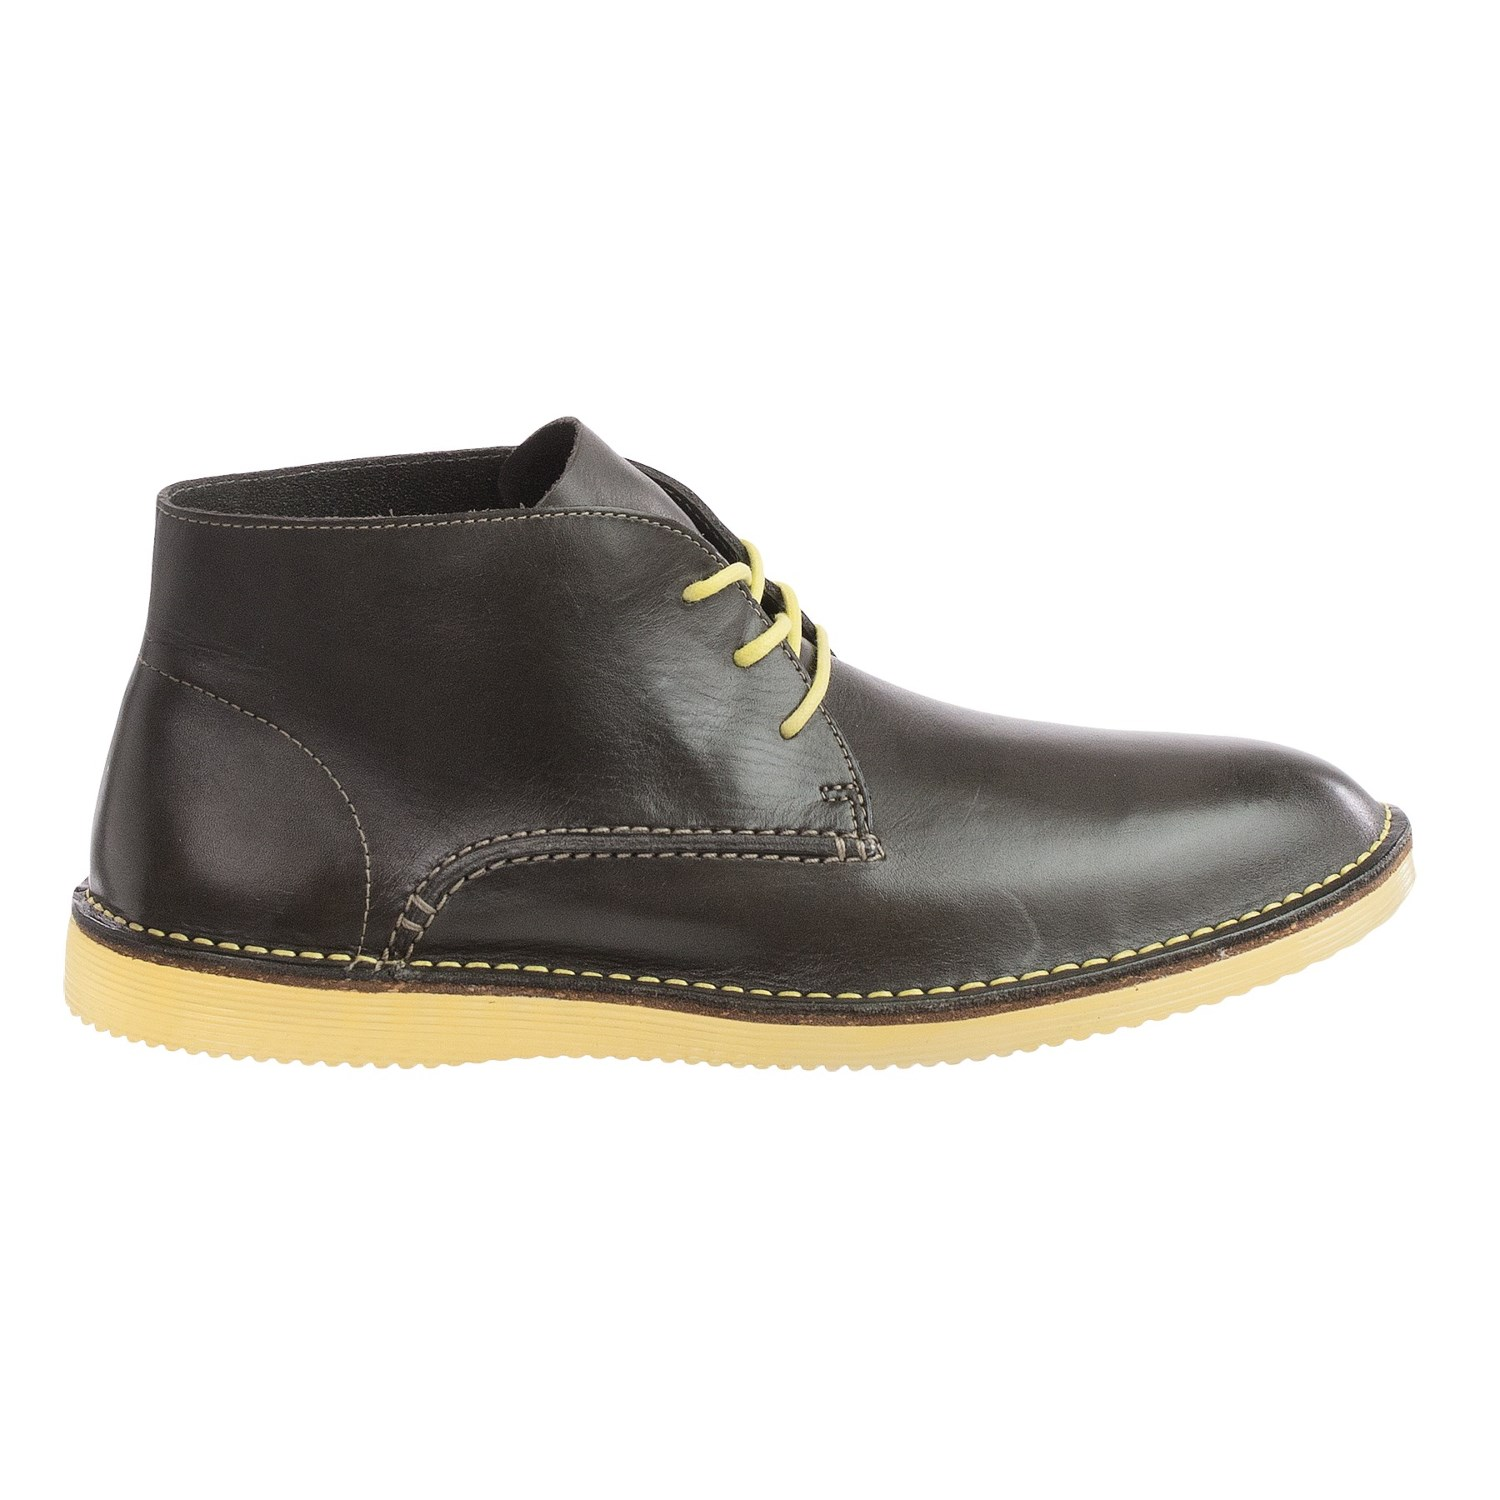 Clarks Chukka Boots Men Images